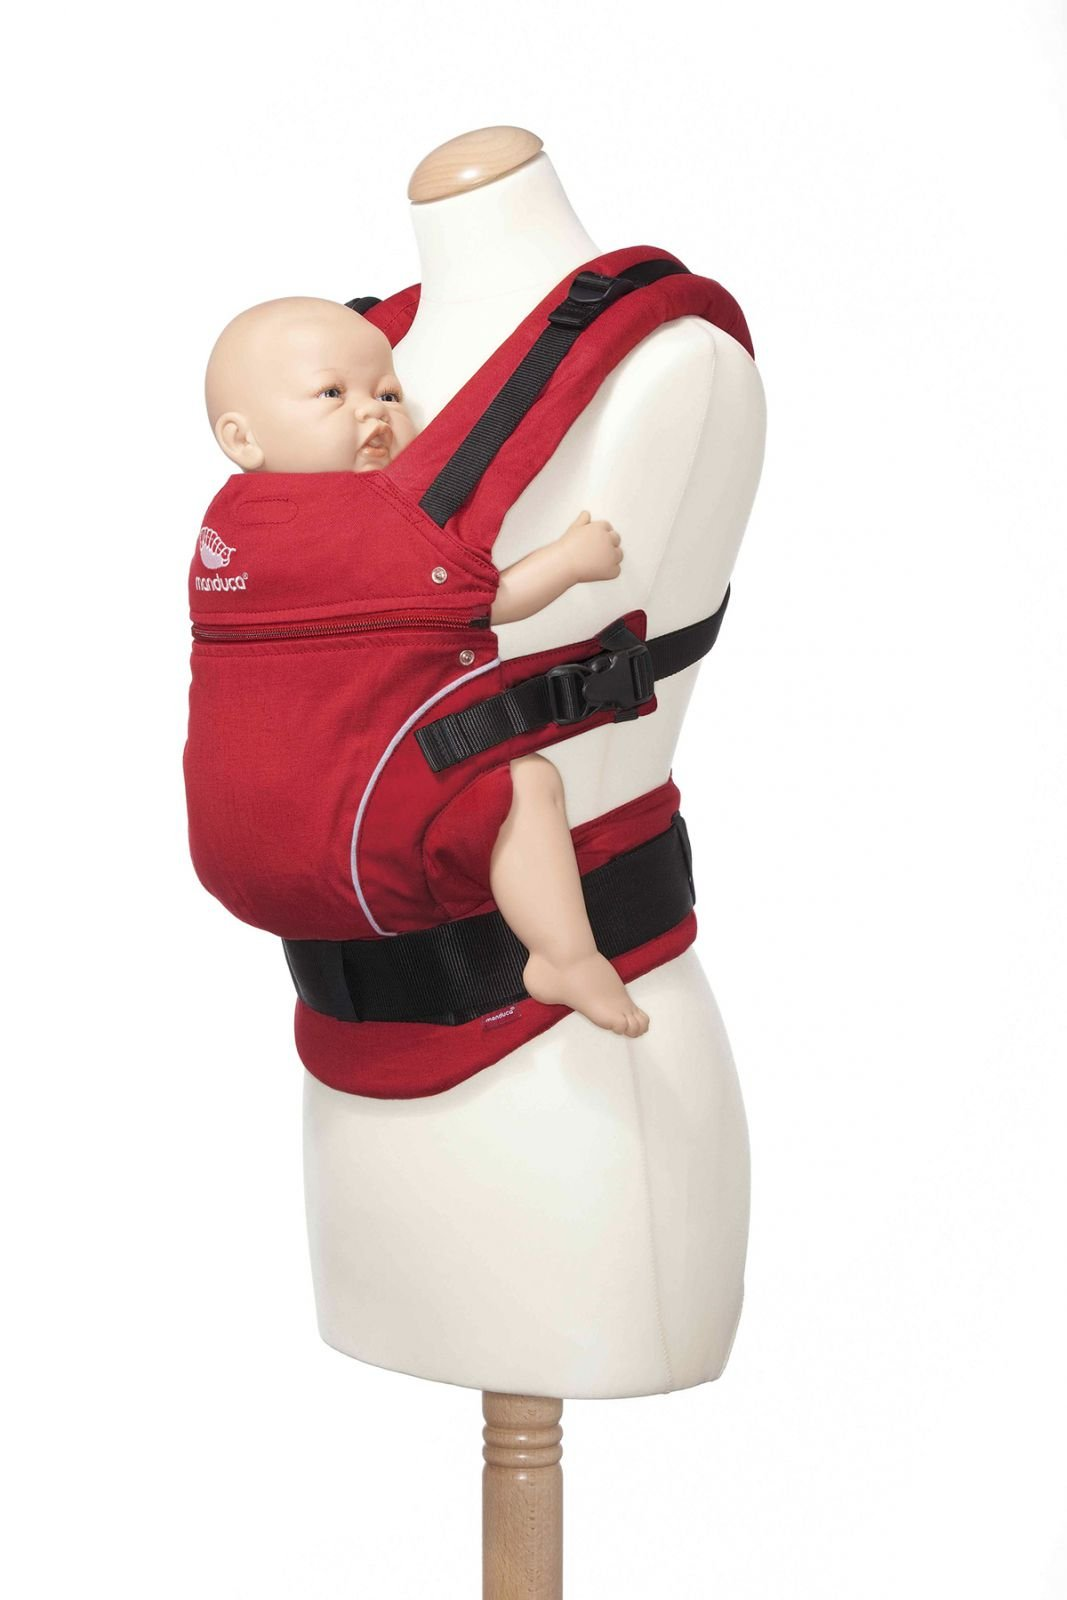 Manduca 3-in-1 Pure Cotton Baby Carrier (Chili Red) Manduca 3-in-1 soft structured baby carrier that supports baby in the healthiest position Made from 100% organic cotton Suitable from newborn to pre-schooler taking a weight of 45lbs. 8